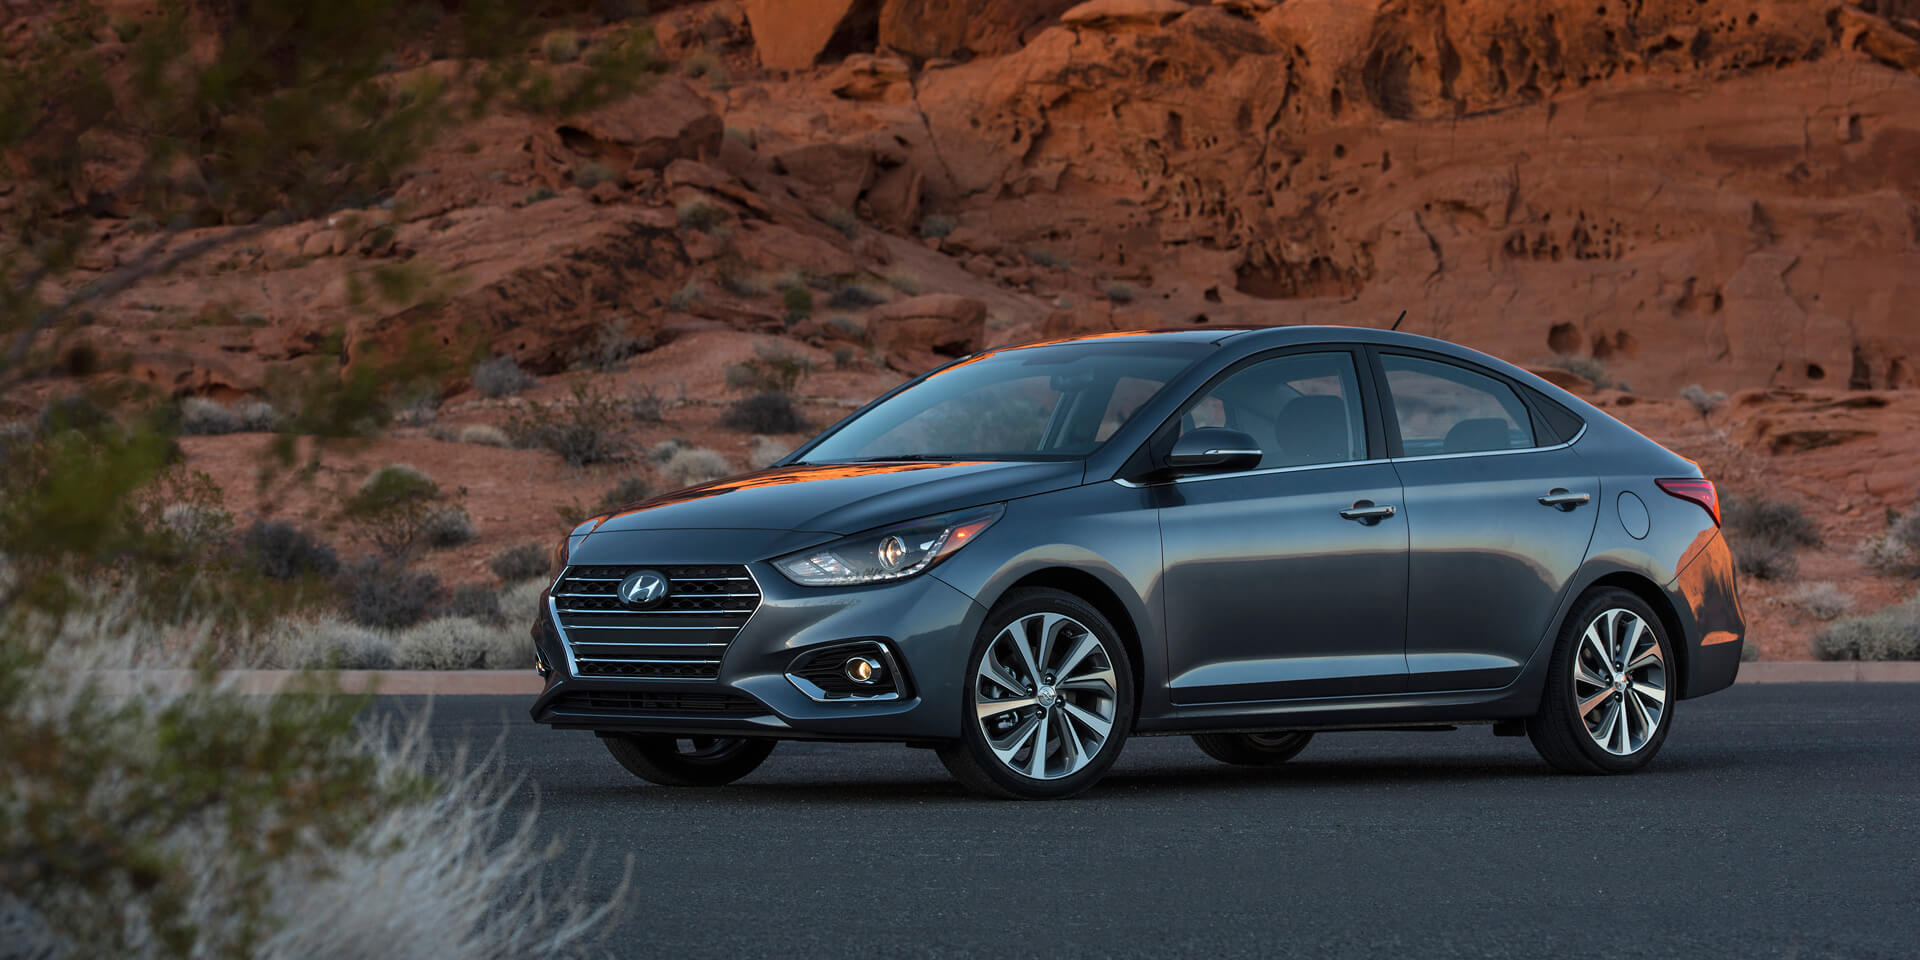 2020 Hyundai Accent Pricing, Review, and Specs - Wallace ...